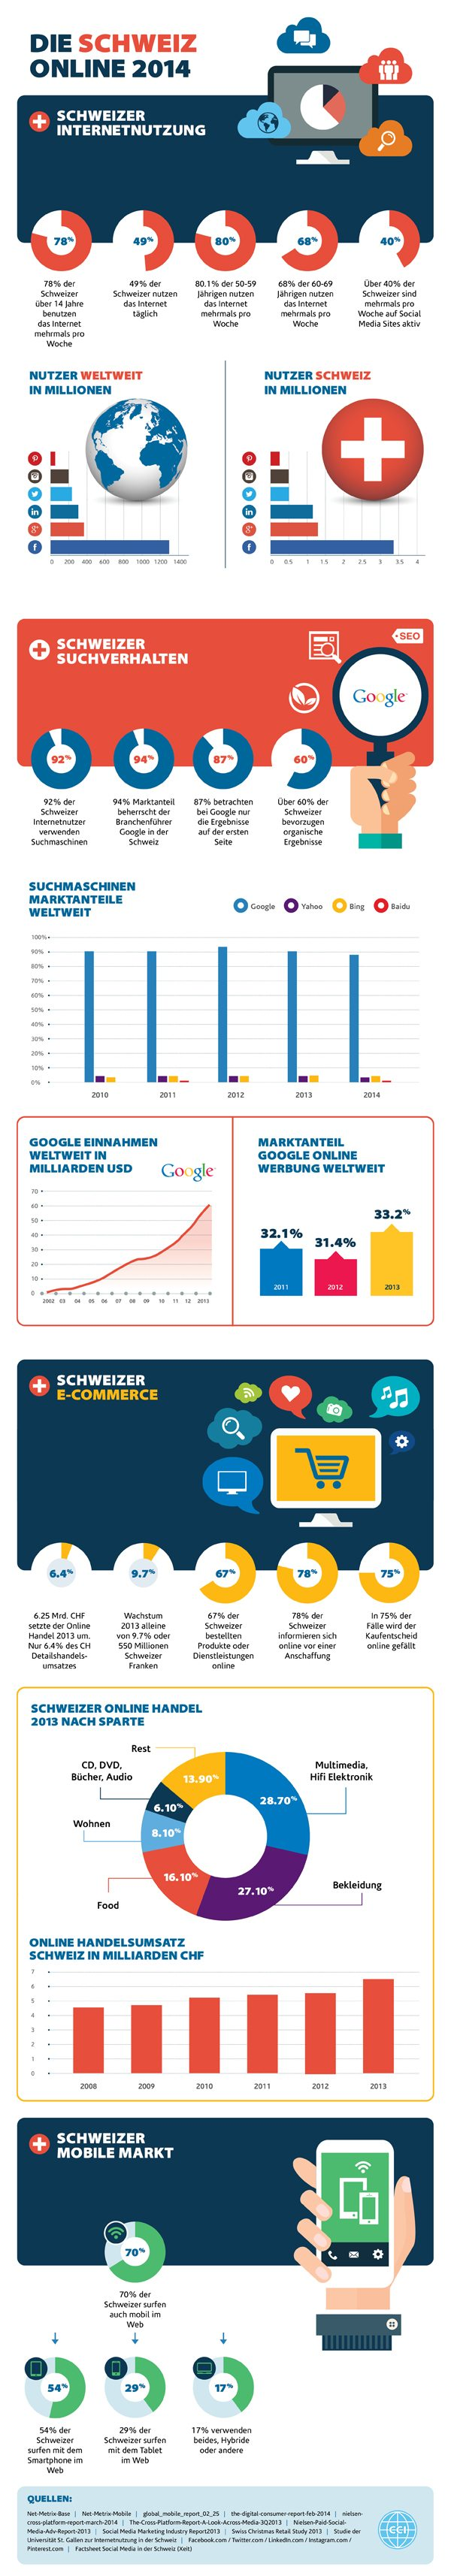 Infographic Switzerland online 2014